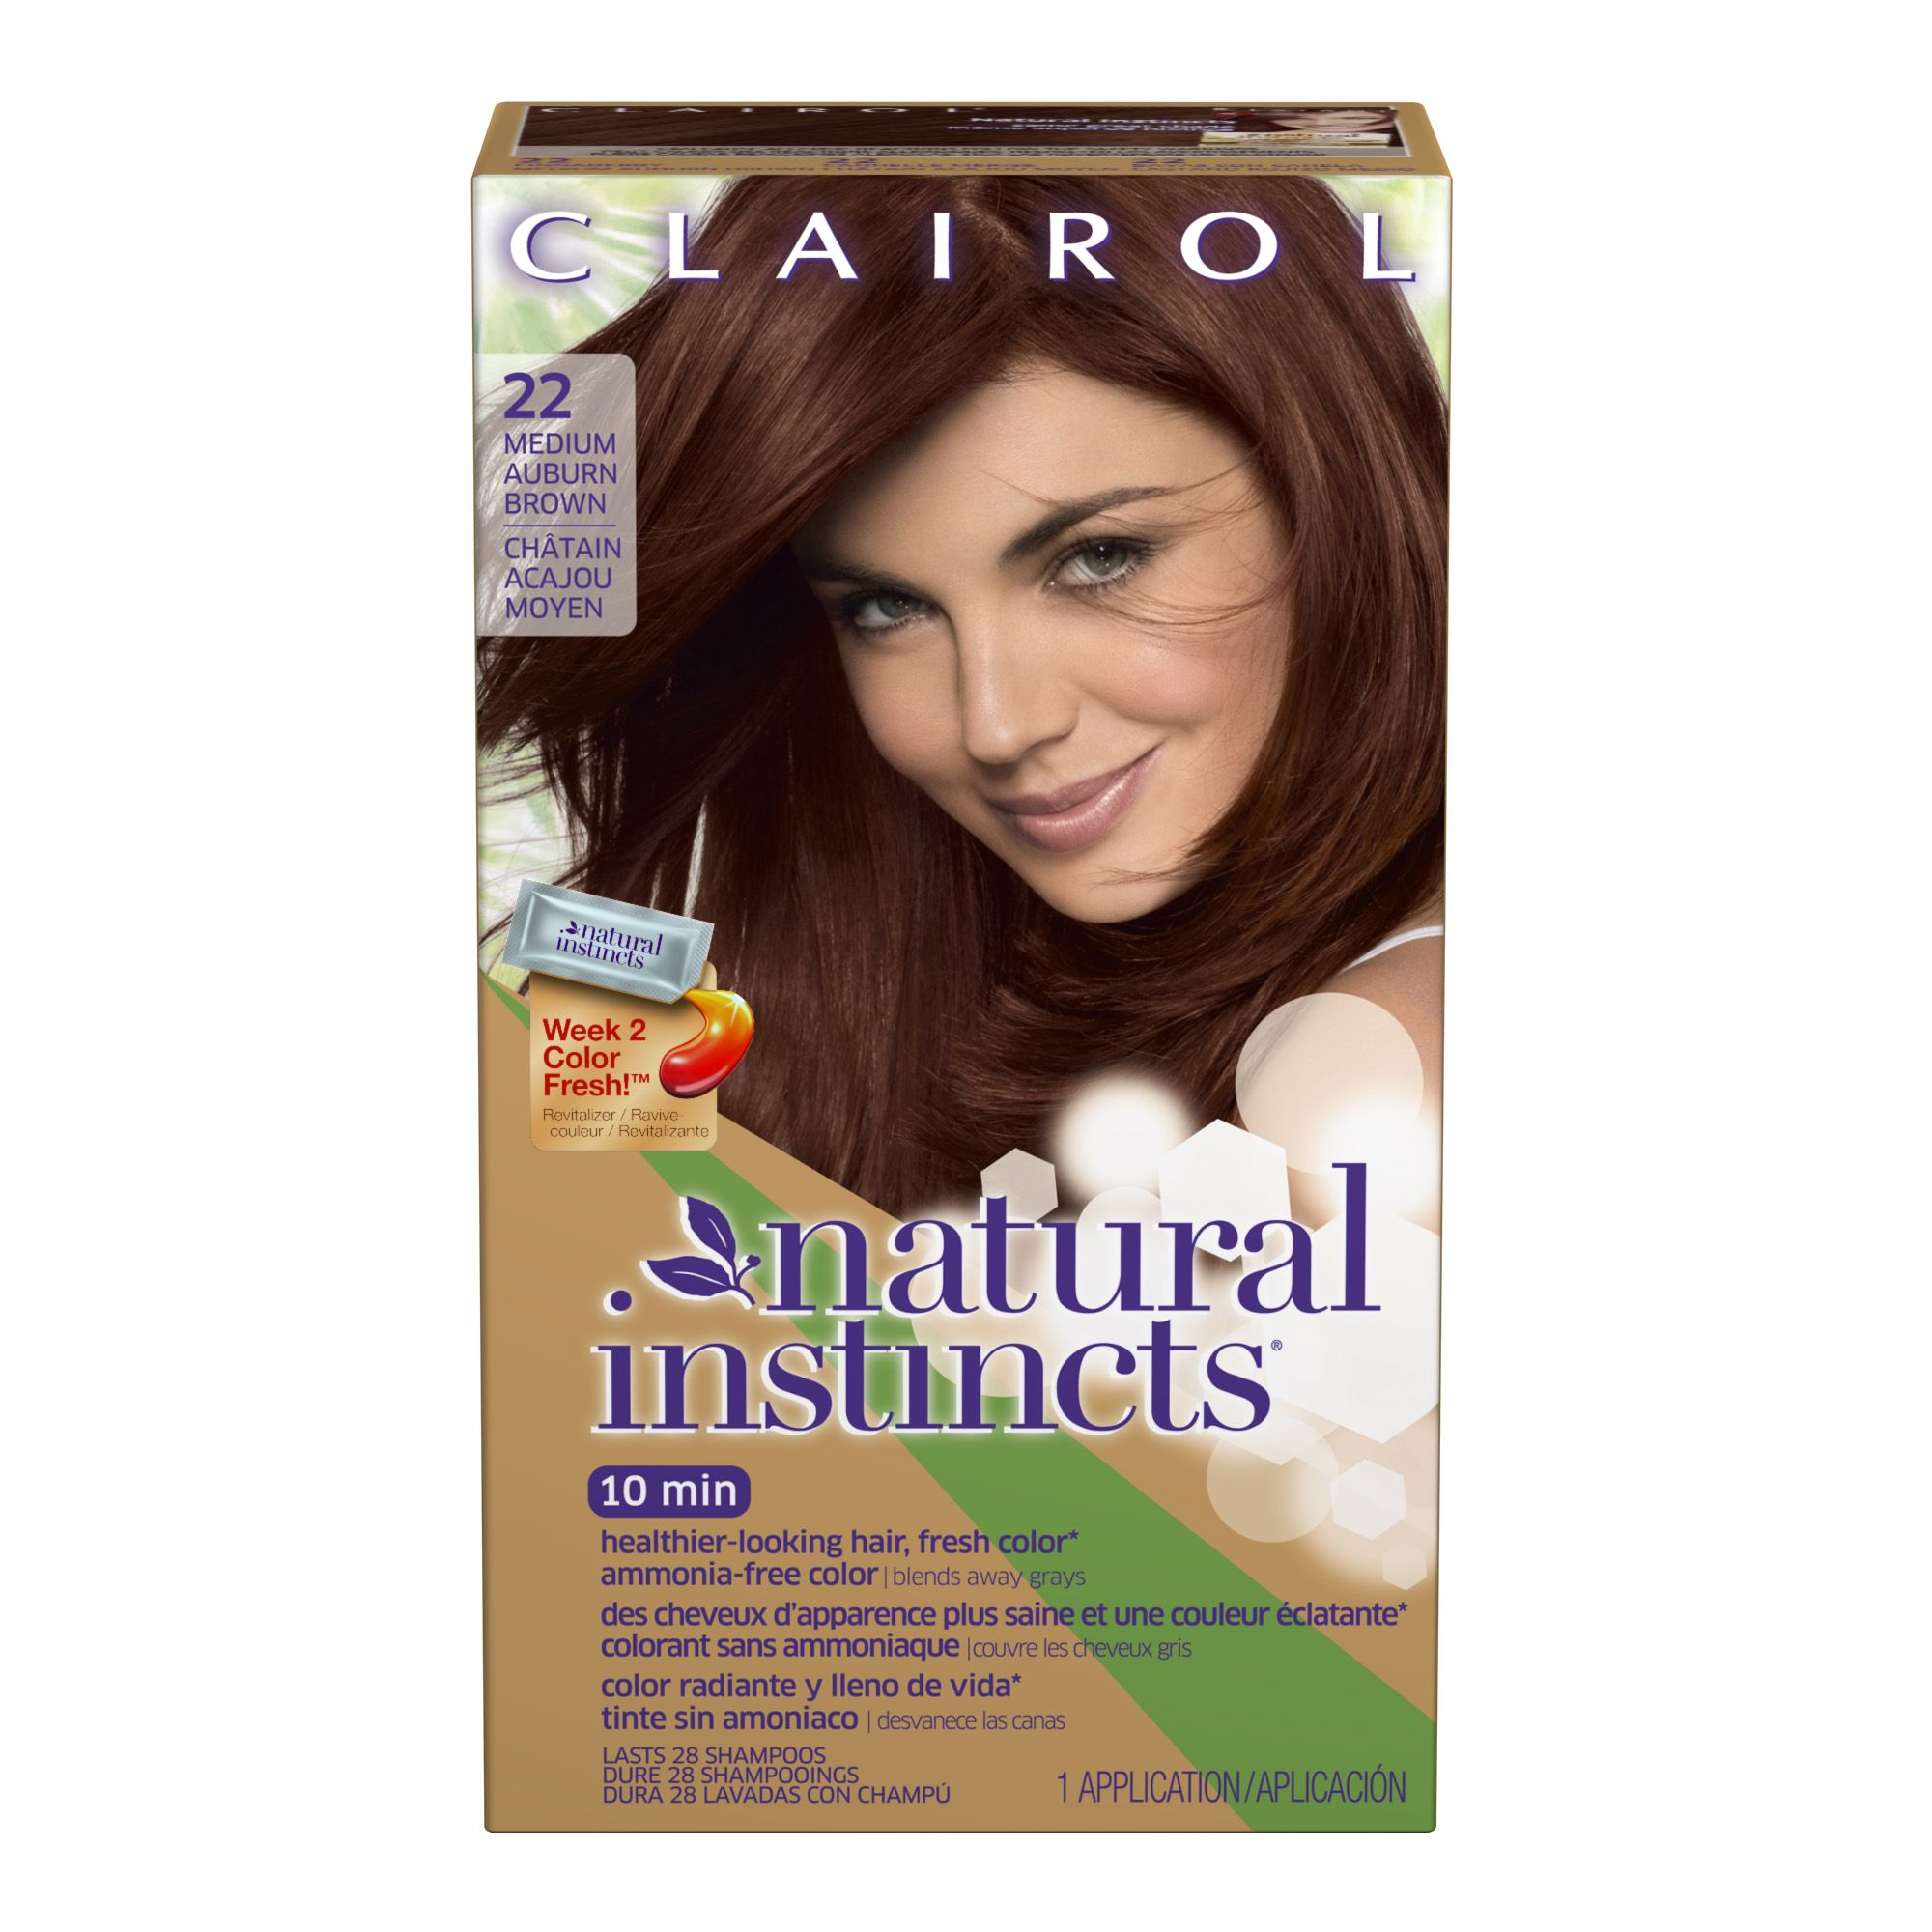 Shade 22 Cinnaberry The Color I Want To Dye My Hairbut I Would